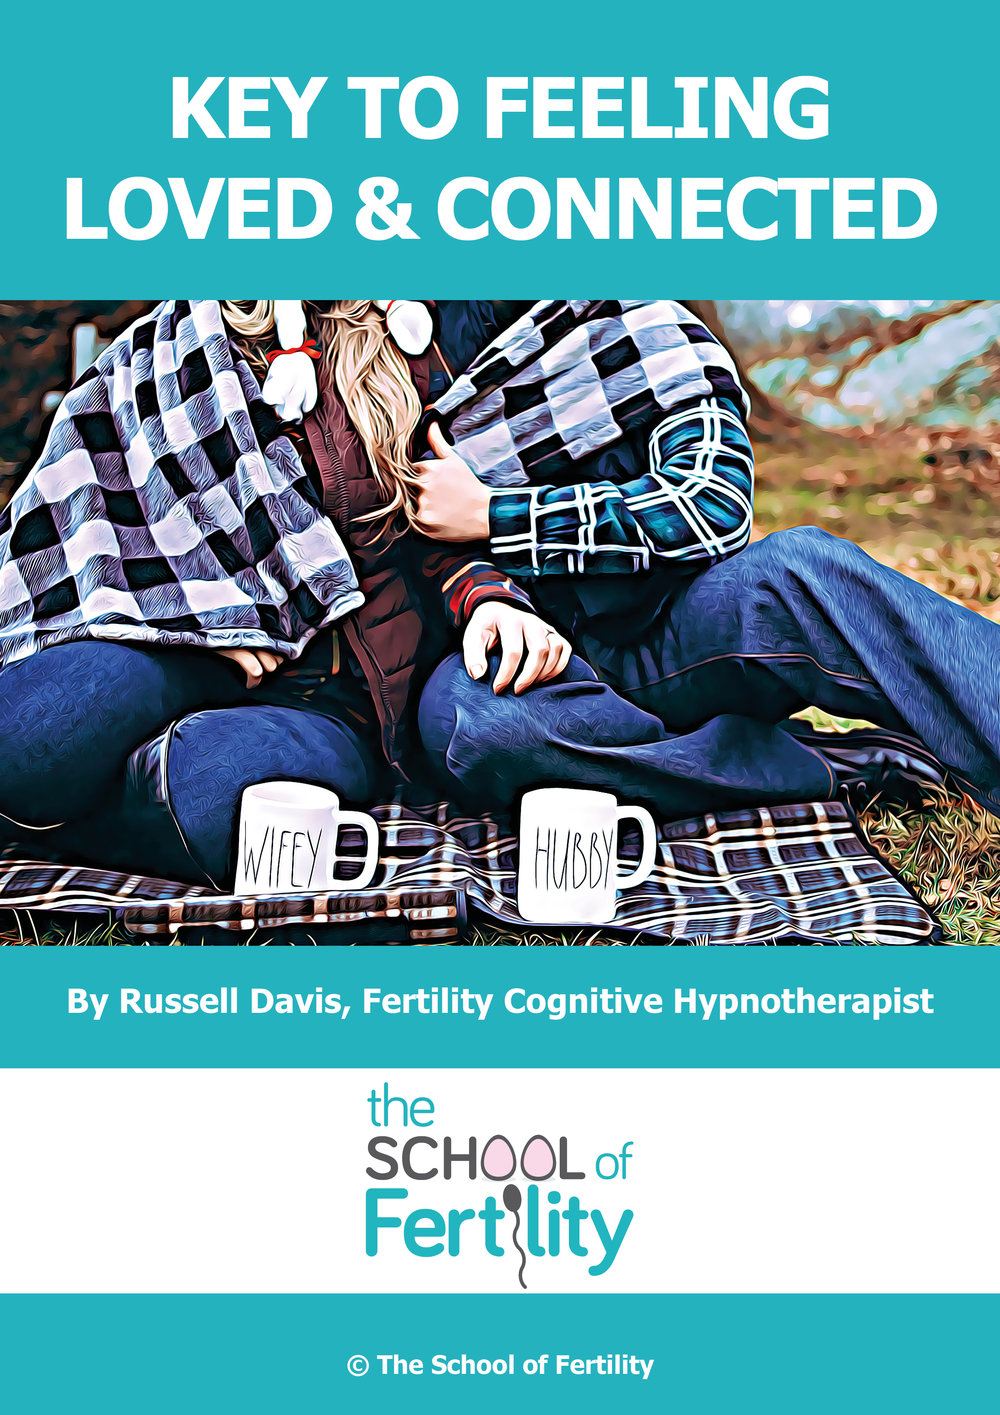 Key to feeling loved and connected (c) The School of Fertility